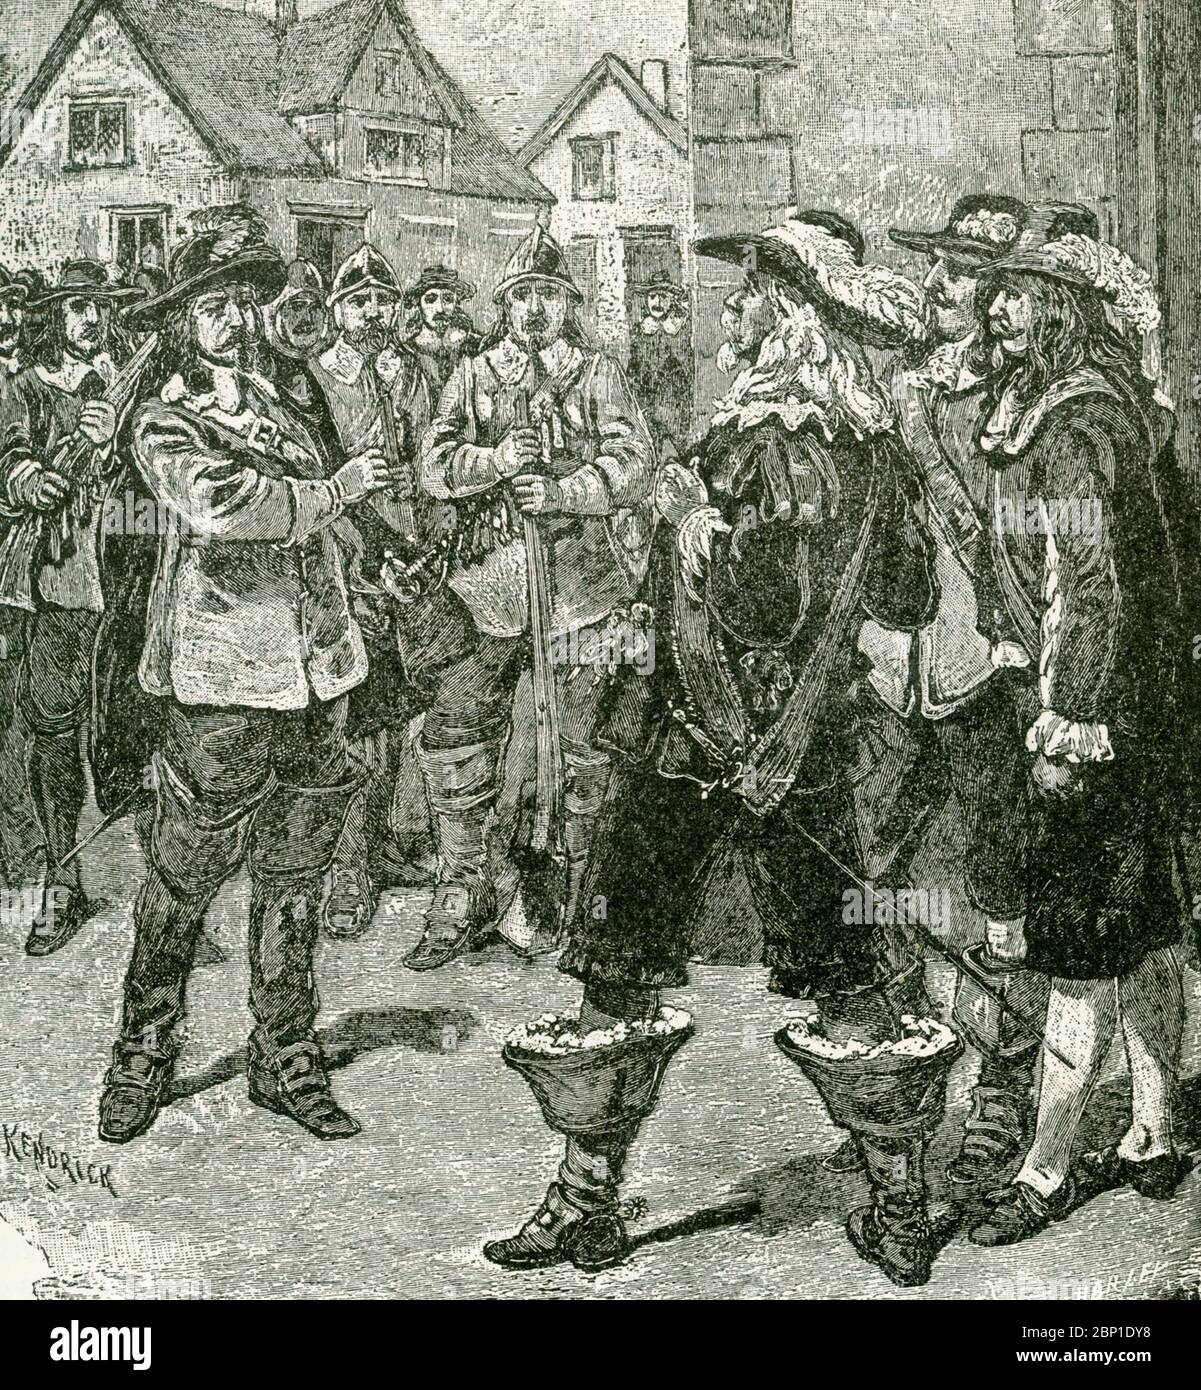 In this 1890s illustration, Governor Sir William Berkeley pardons Nathaniel Bacon but then changes his mind. On June 23, 1676, Nathaniel Bacon returns to Jamestown with 500 men and demands Governor Sir William Berkeley commission him as a general to lead the colony against the Indians. After a standoff, the governor yields to Bacon's demands. Bacon's Rebellion was an armed rebellion that took place 1676-1677 by Virginia settlers led by Nathaniel Bacon against the rule of Governor William Berkeley. Stock Photo